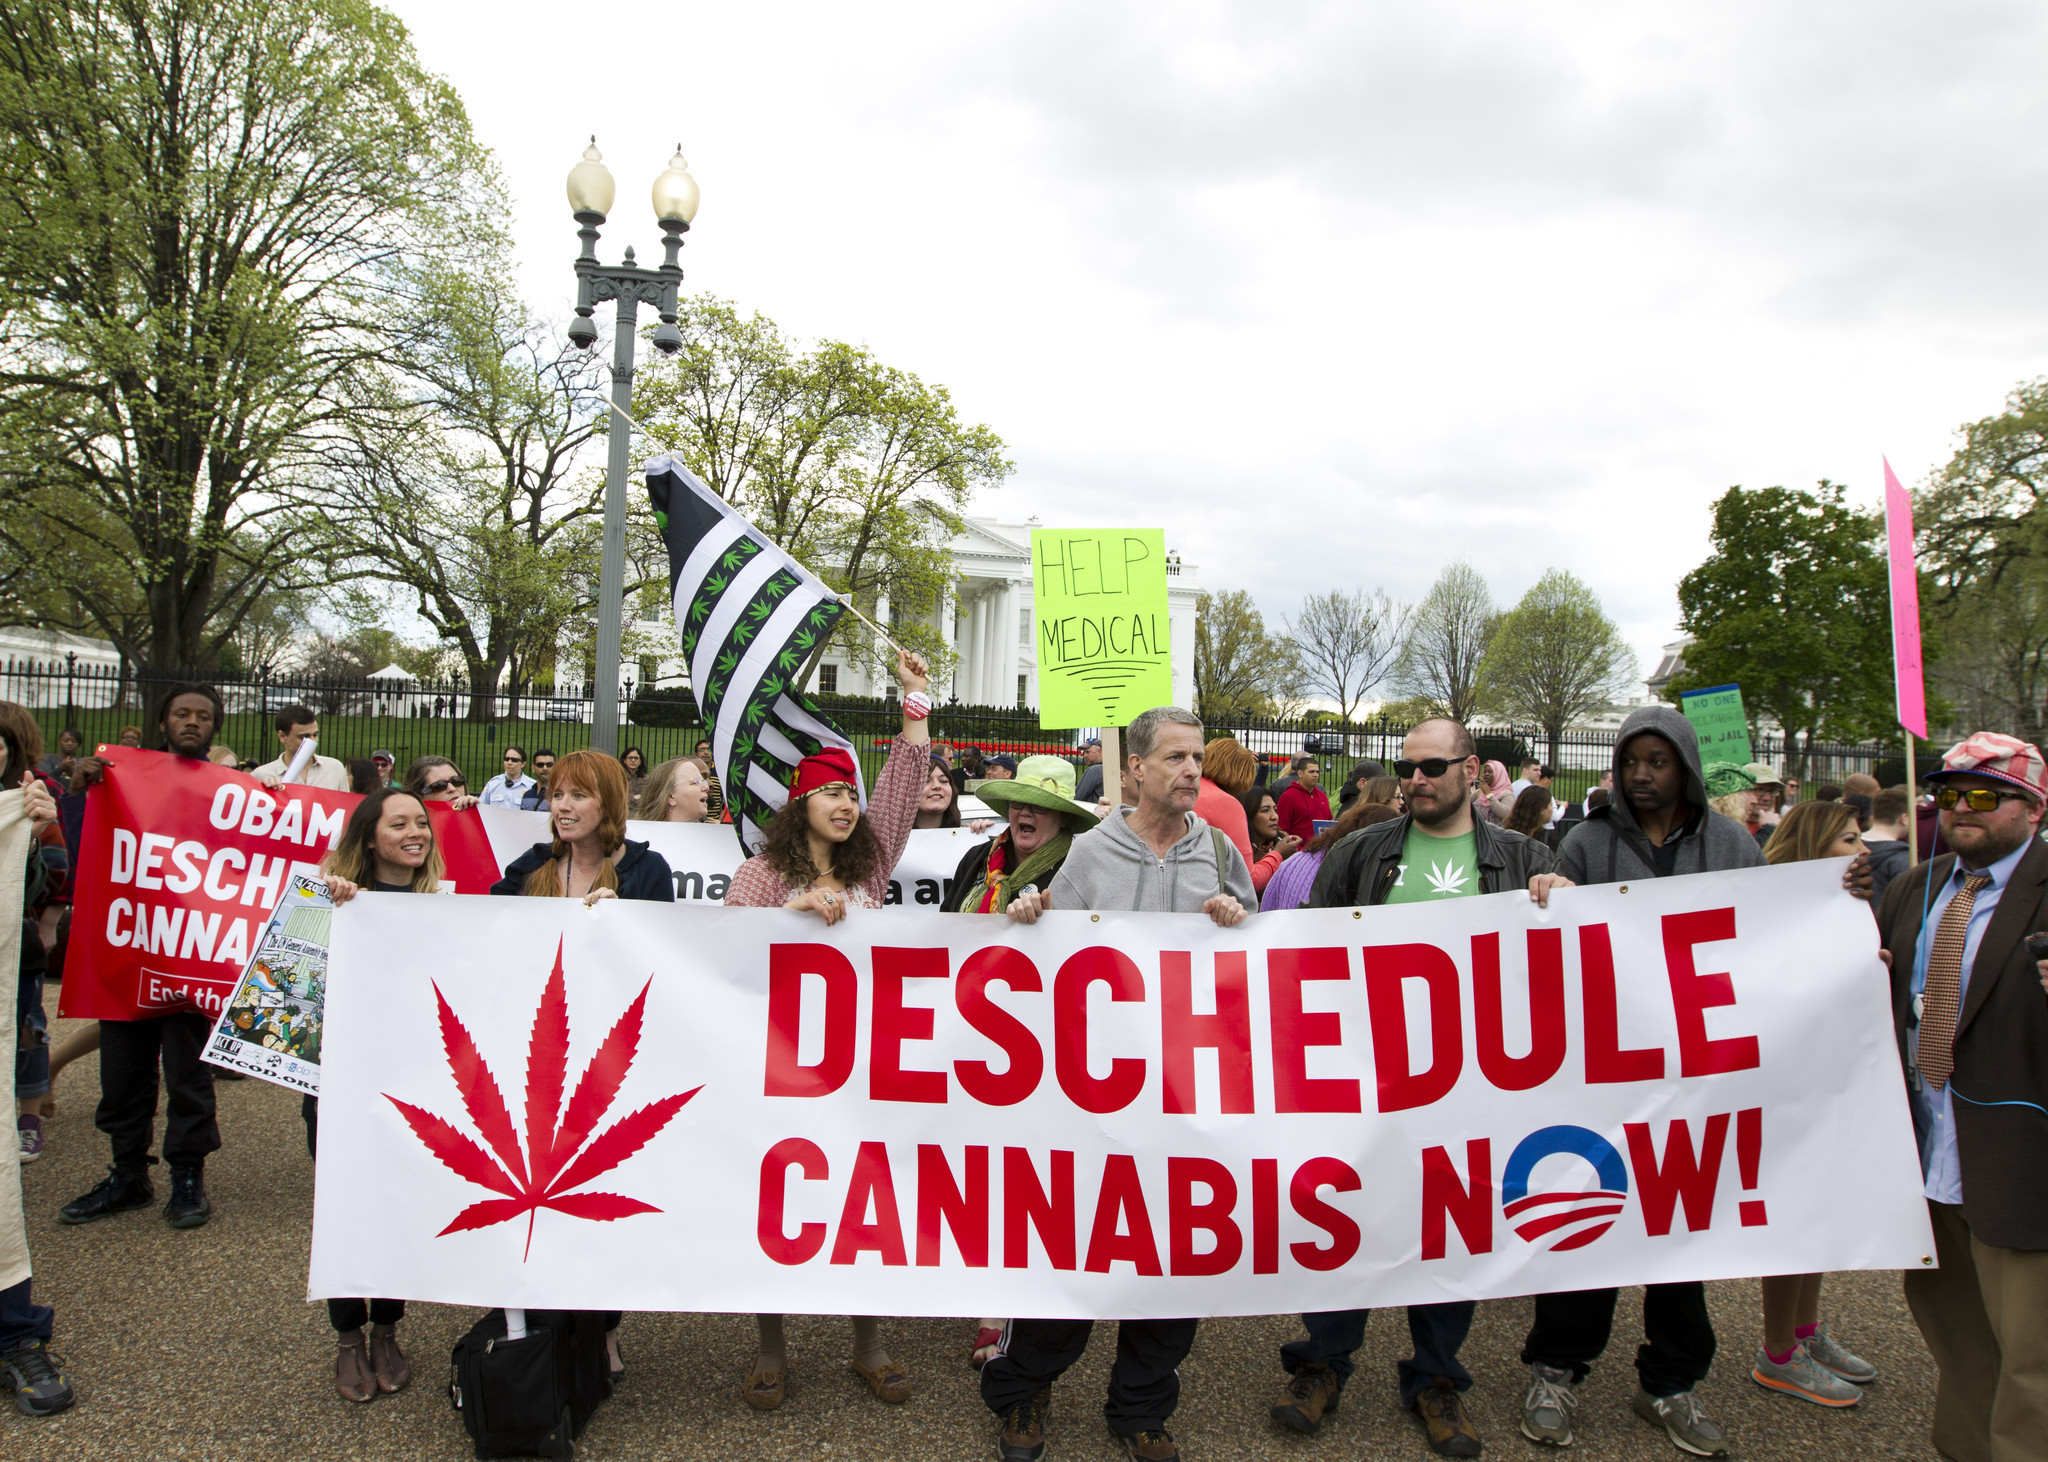 Pot activists smoke outside the White House; no arrests made